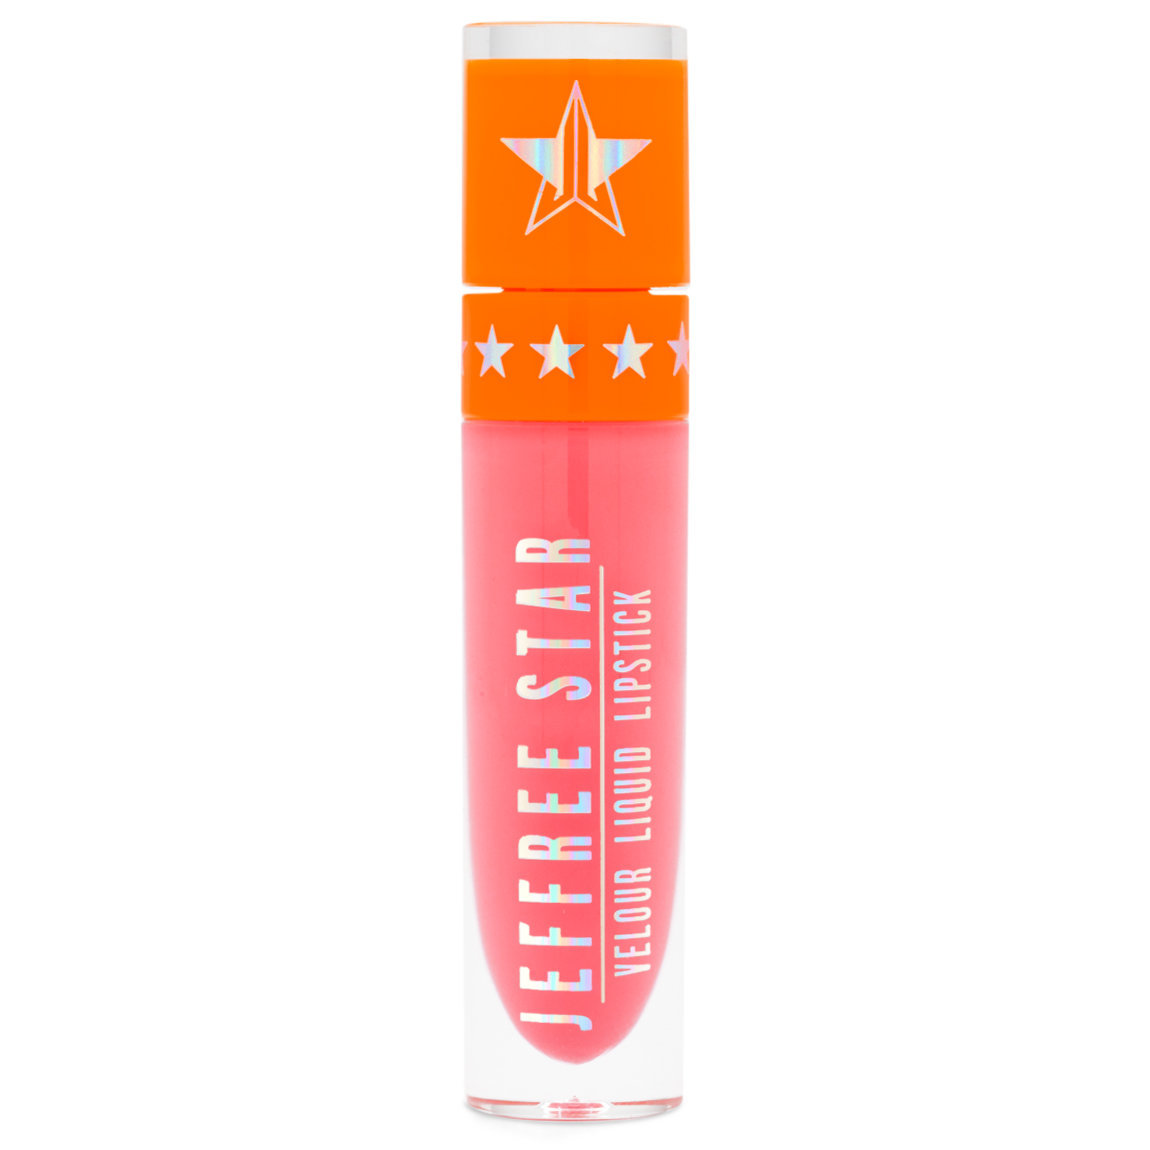 Jeffree Star Cosmetics Velour Liquid Lipstick (818)